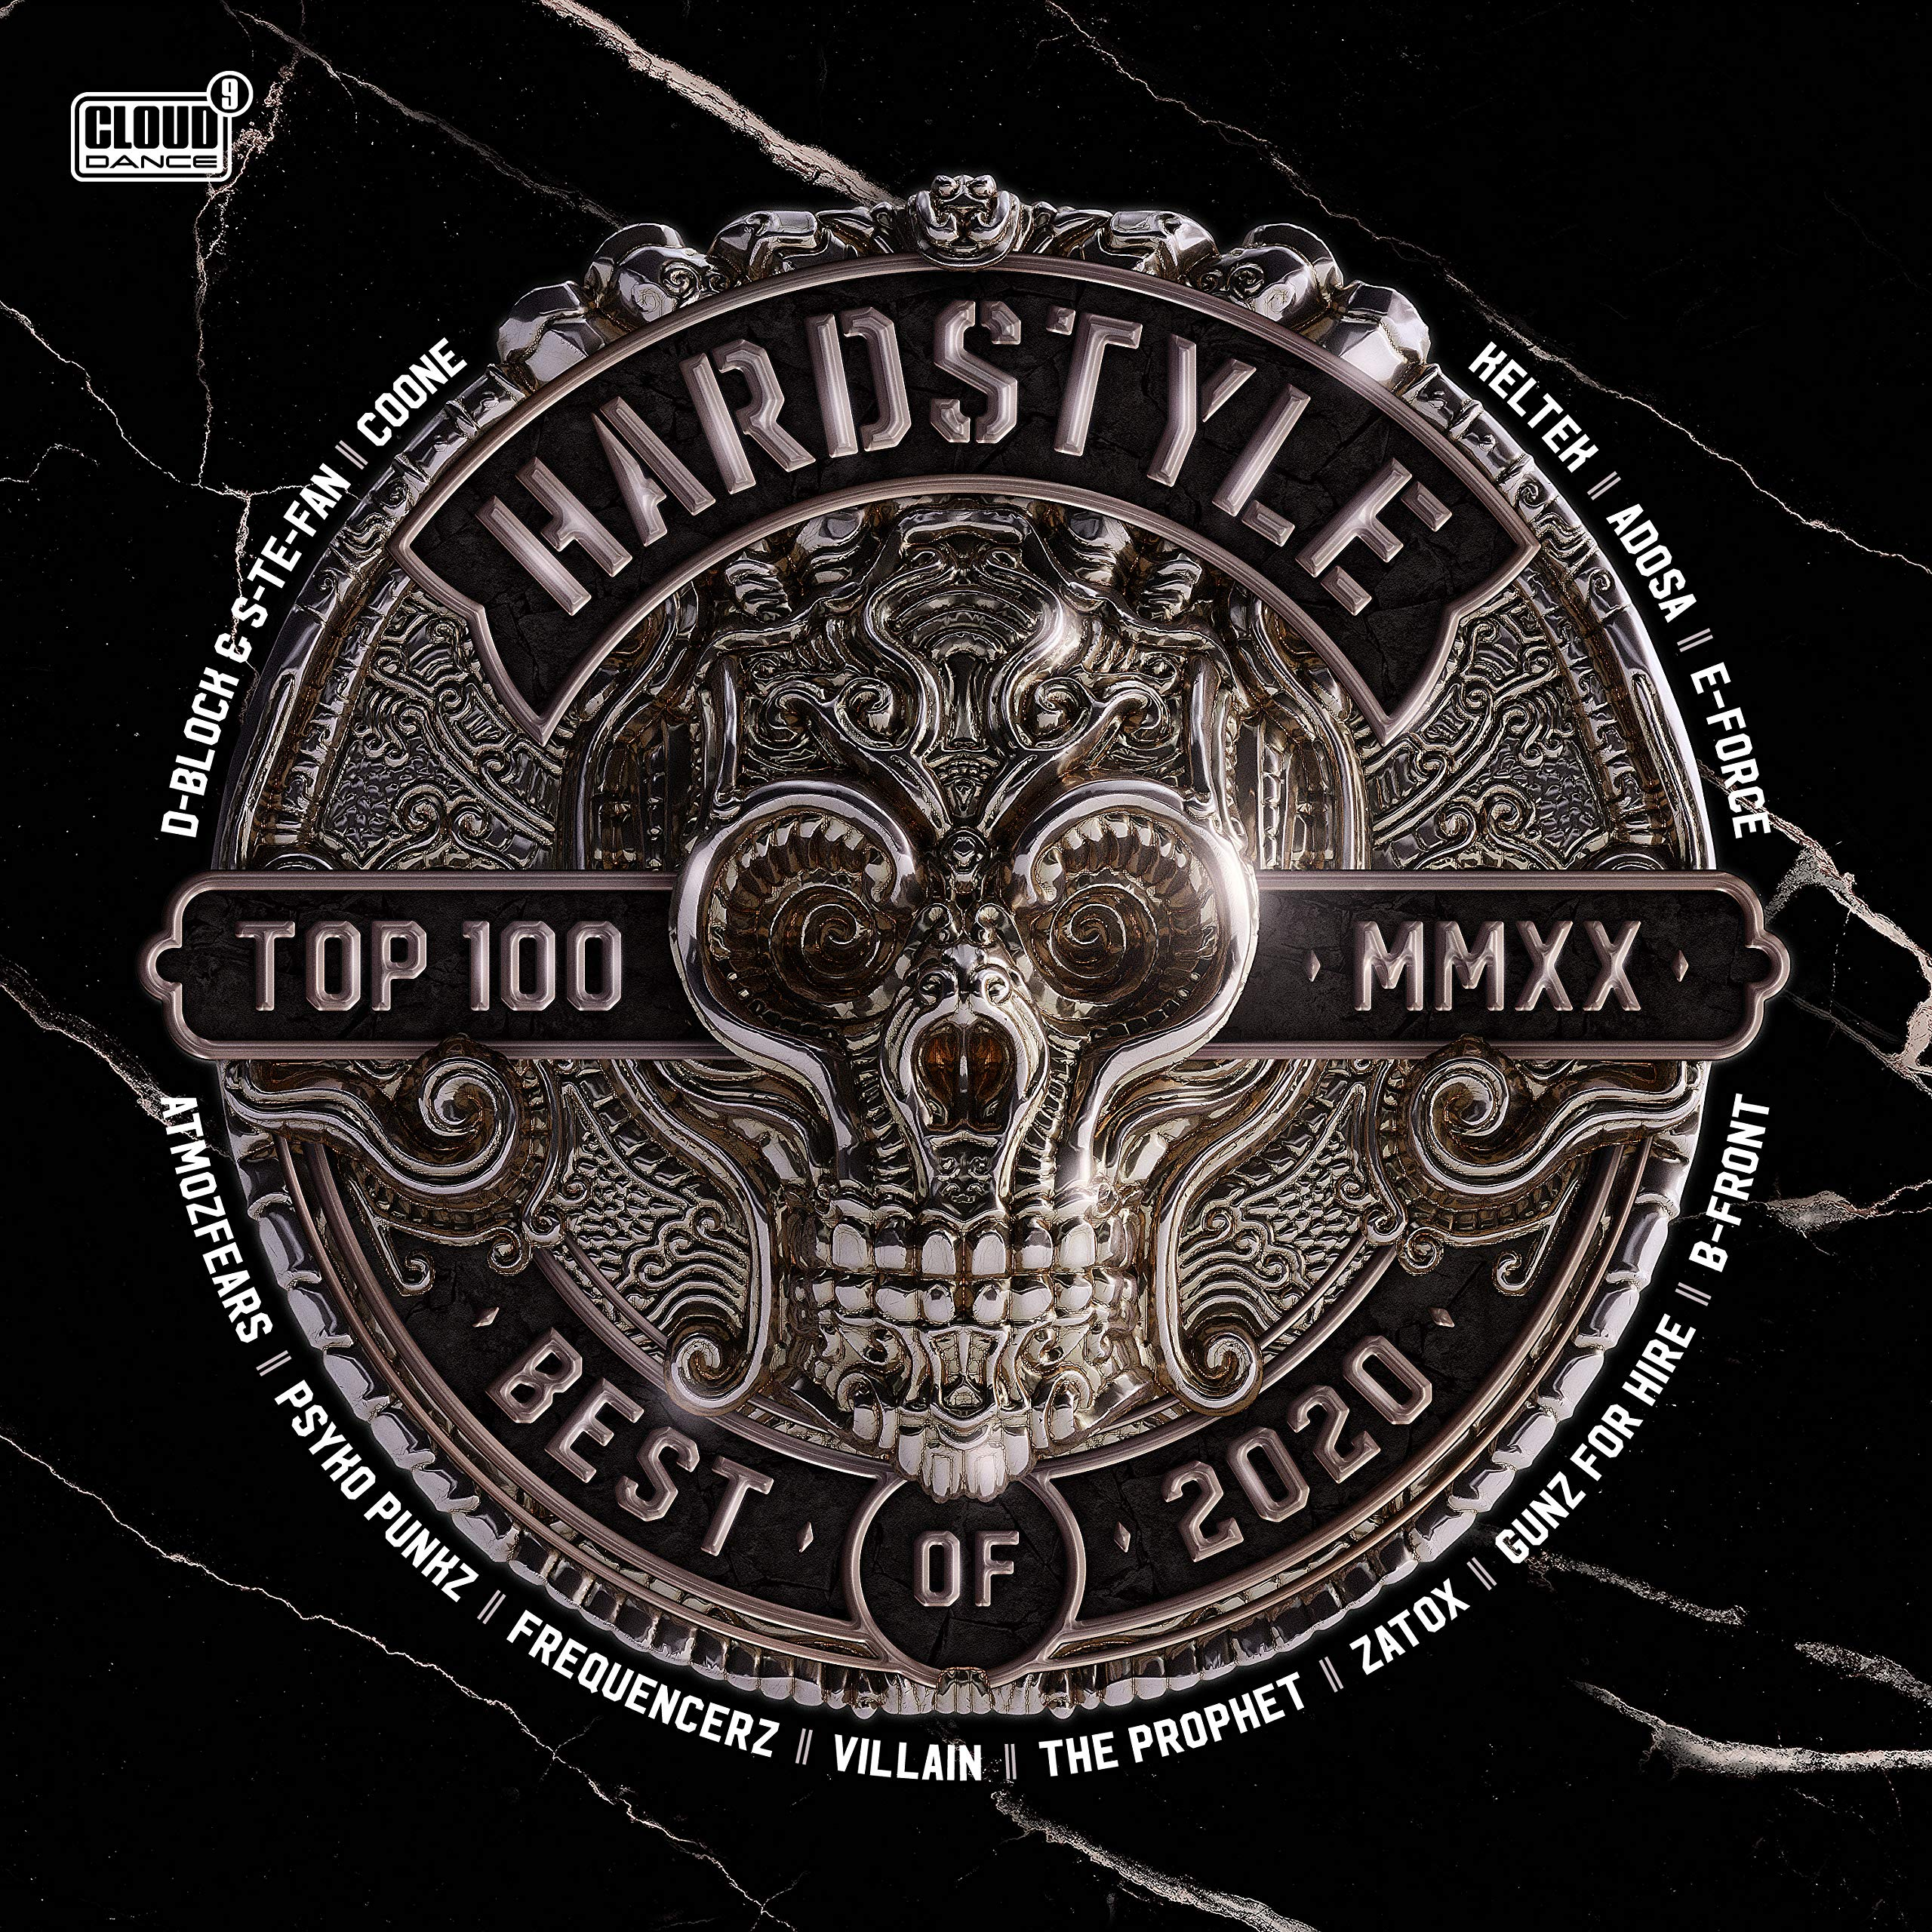 VA-Hardstyle Top 100 Best Of 2020-(CLDM2020018)-2CD-FLAC-2020-WRE